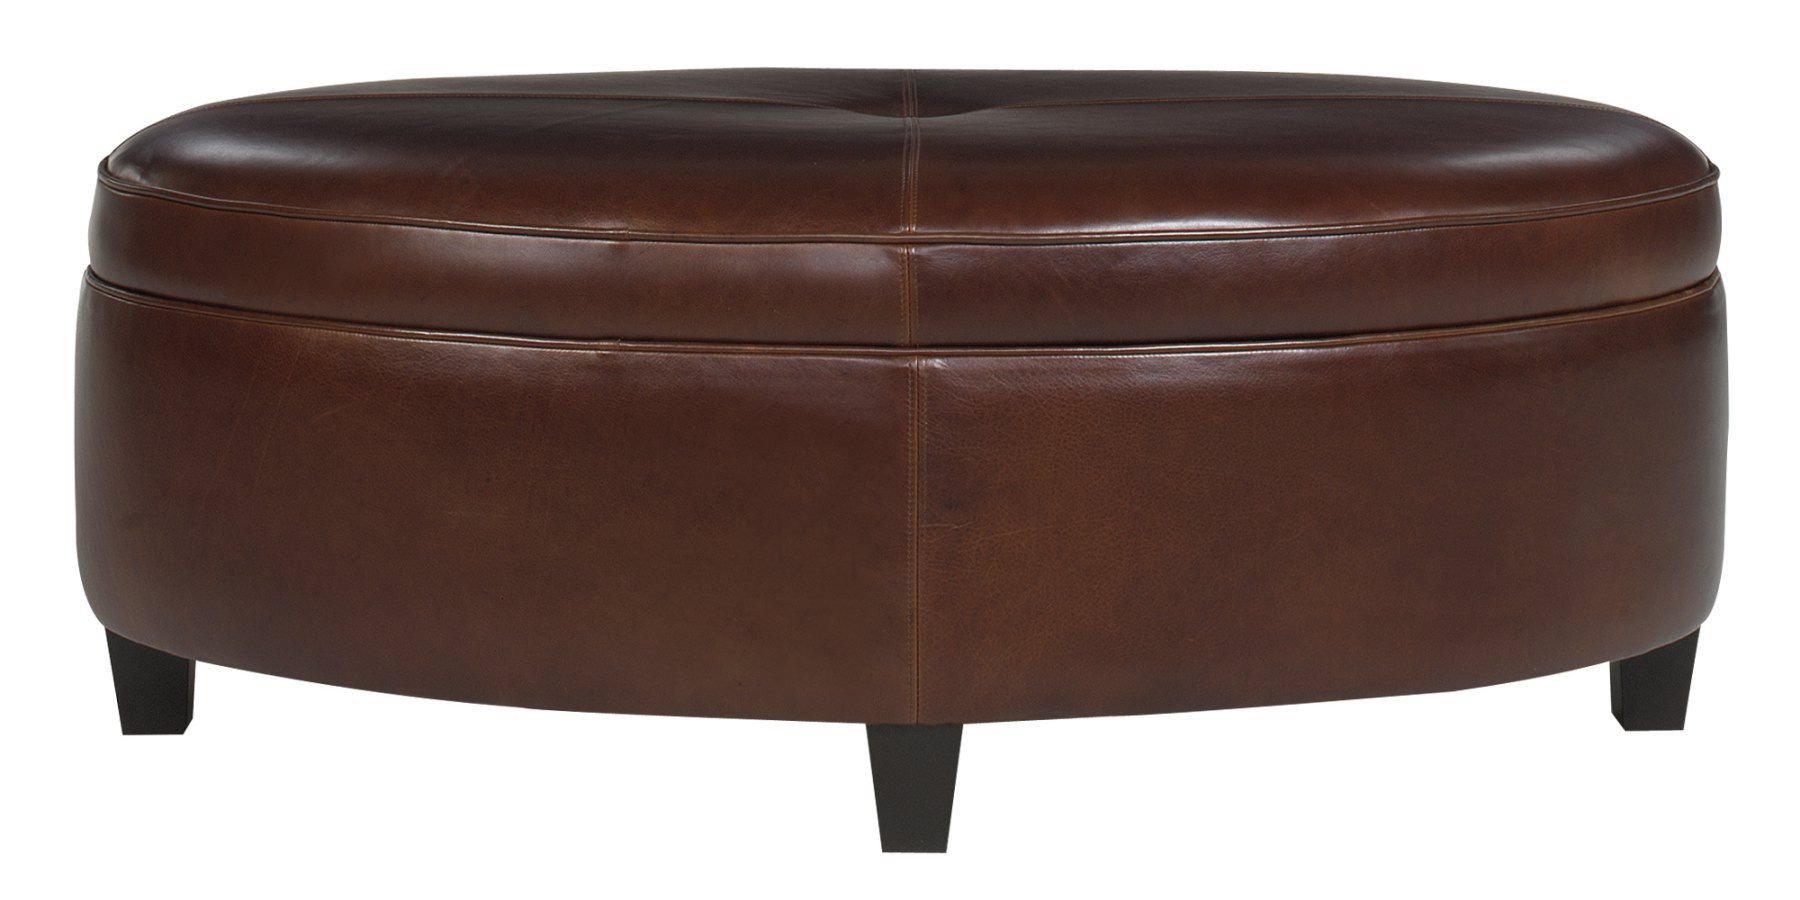 Avery Oval Leather Storage Coffee Table Ottoman Leather Coffee Table Ottoman Coffee Table Ottoman Table